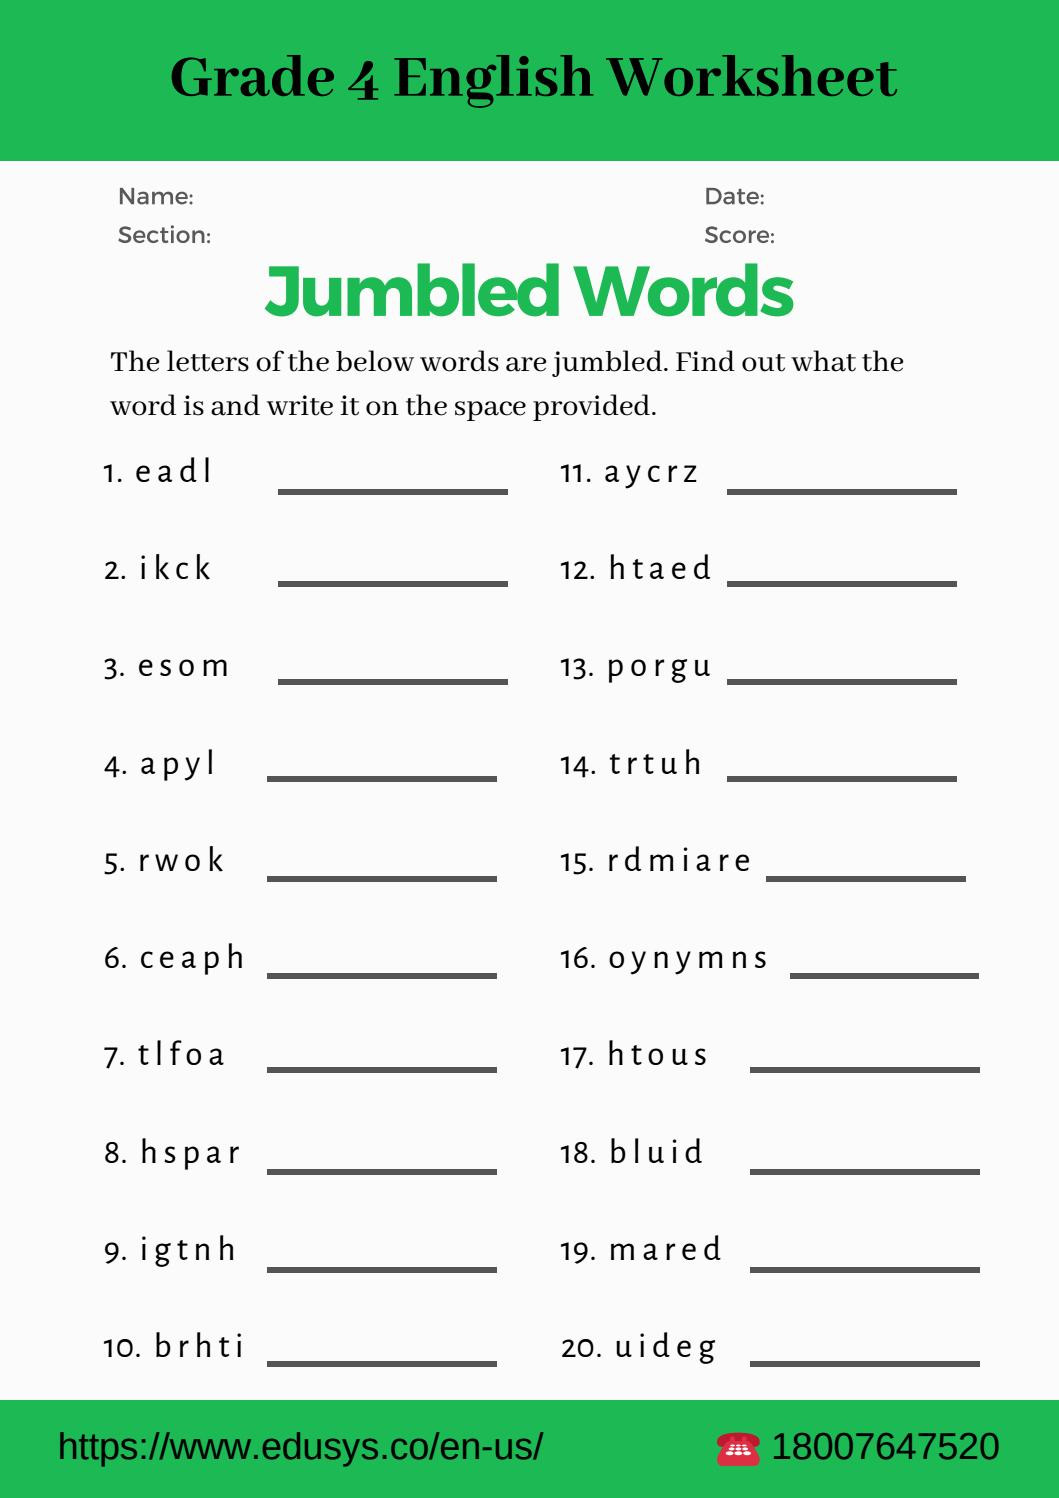 5th Grade Vocabulary Worksheets Pdf 4th Grade English Vocabulary Worksheet Pdf by Nithya issuu